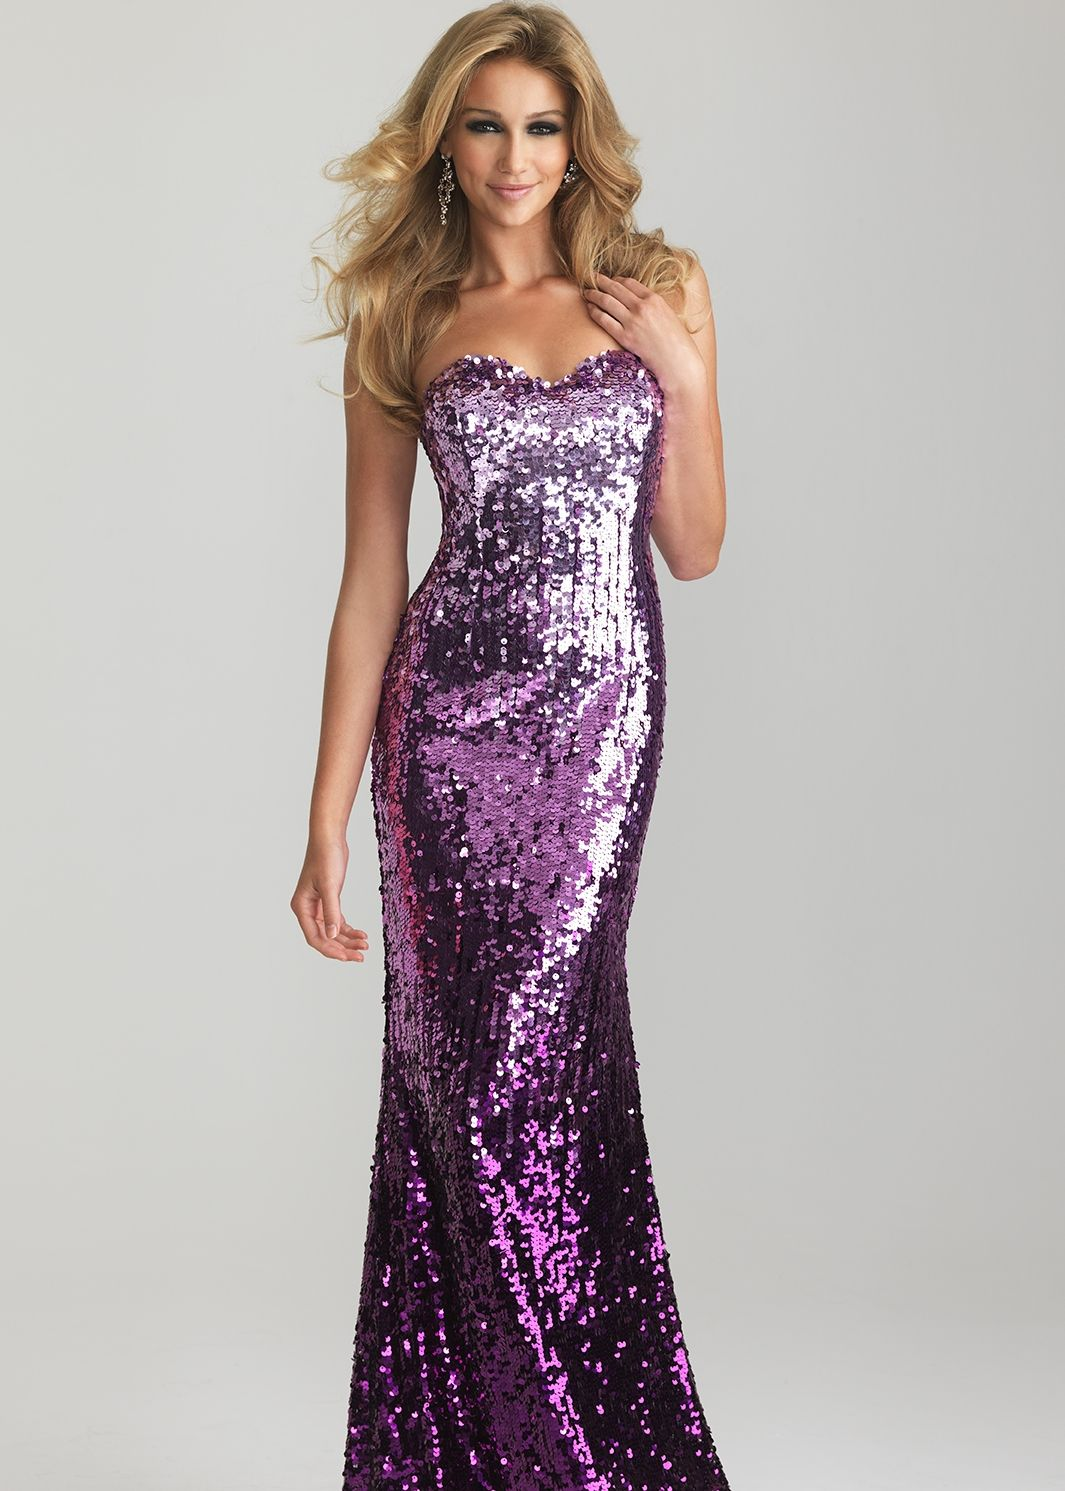 fb83638eb84 Sparkly Sequin Purple Ombre Gown - Night Moves Prom Dresses 6627 -  thepromdresses.com